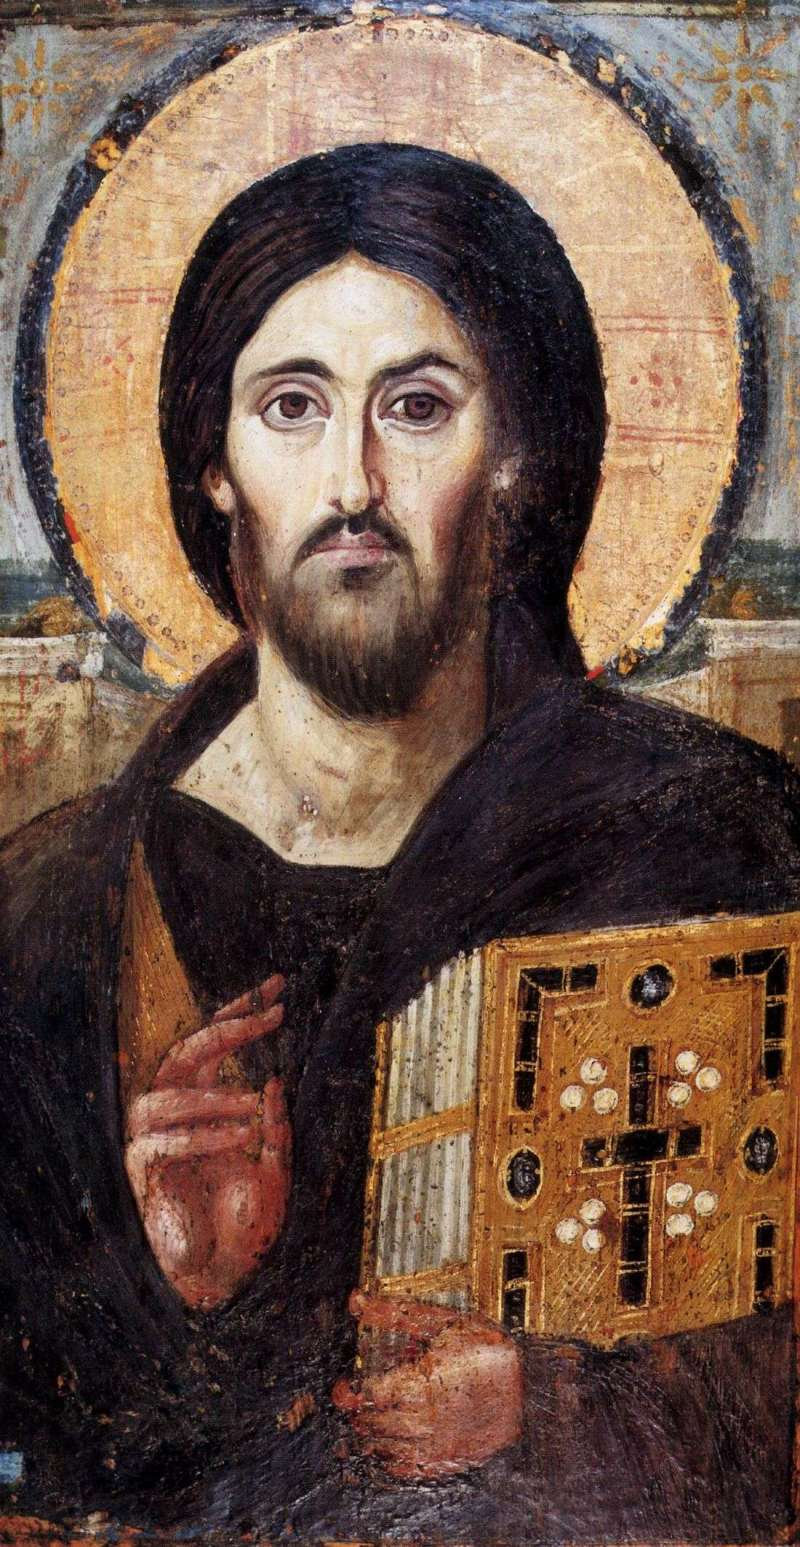 Christ Pantocrator, 6th century. St. Catherine's Monastery, Sinai, Egypt. Via IllustratedPrayer.com